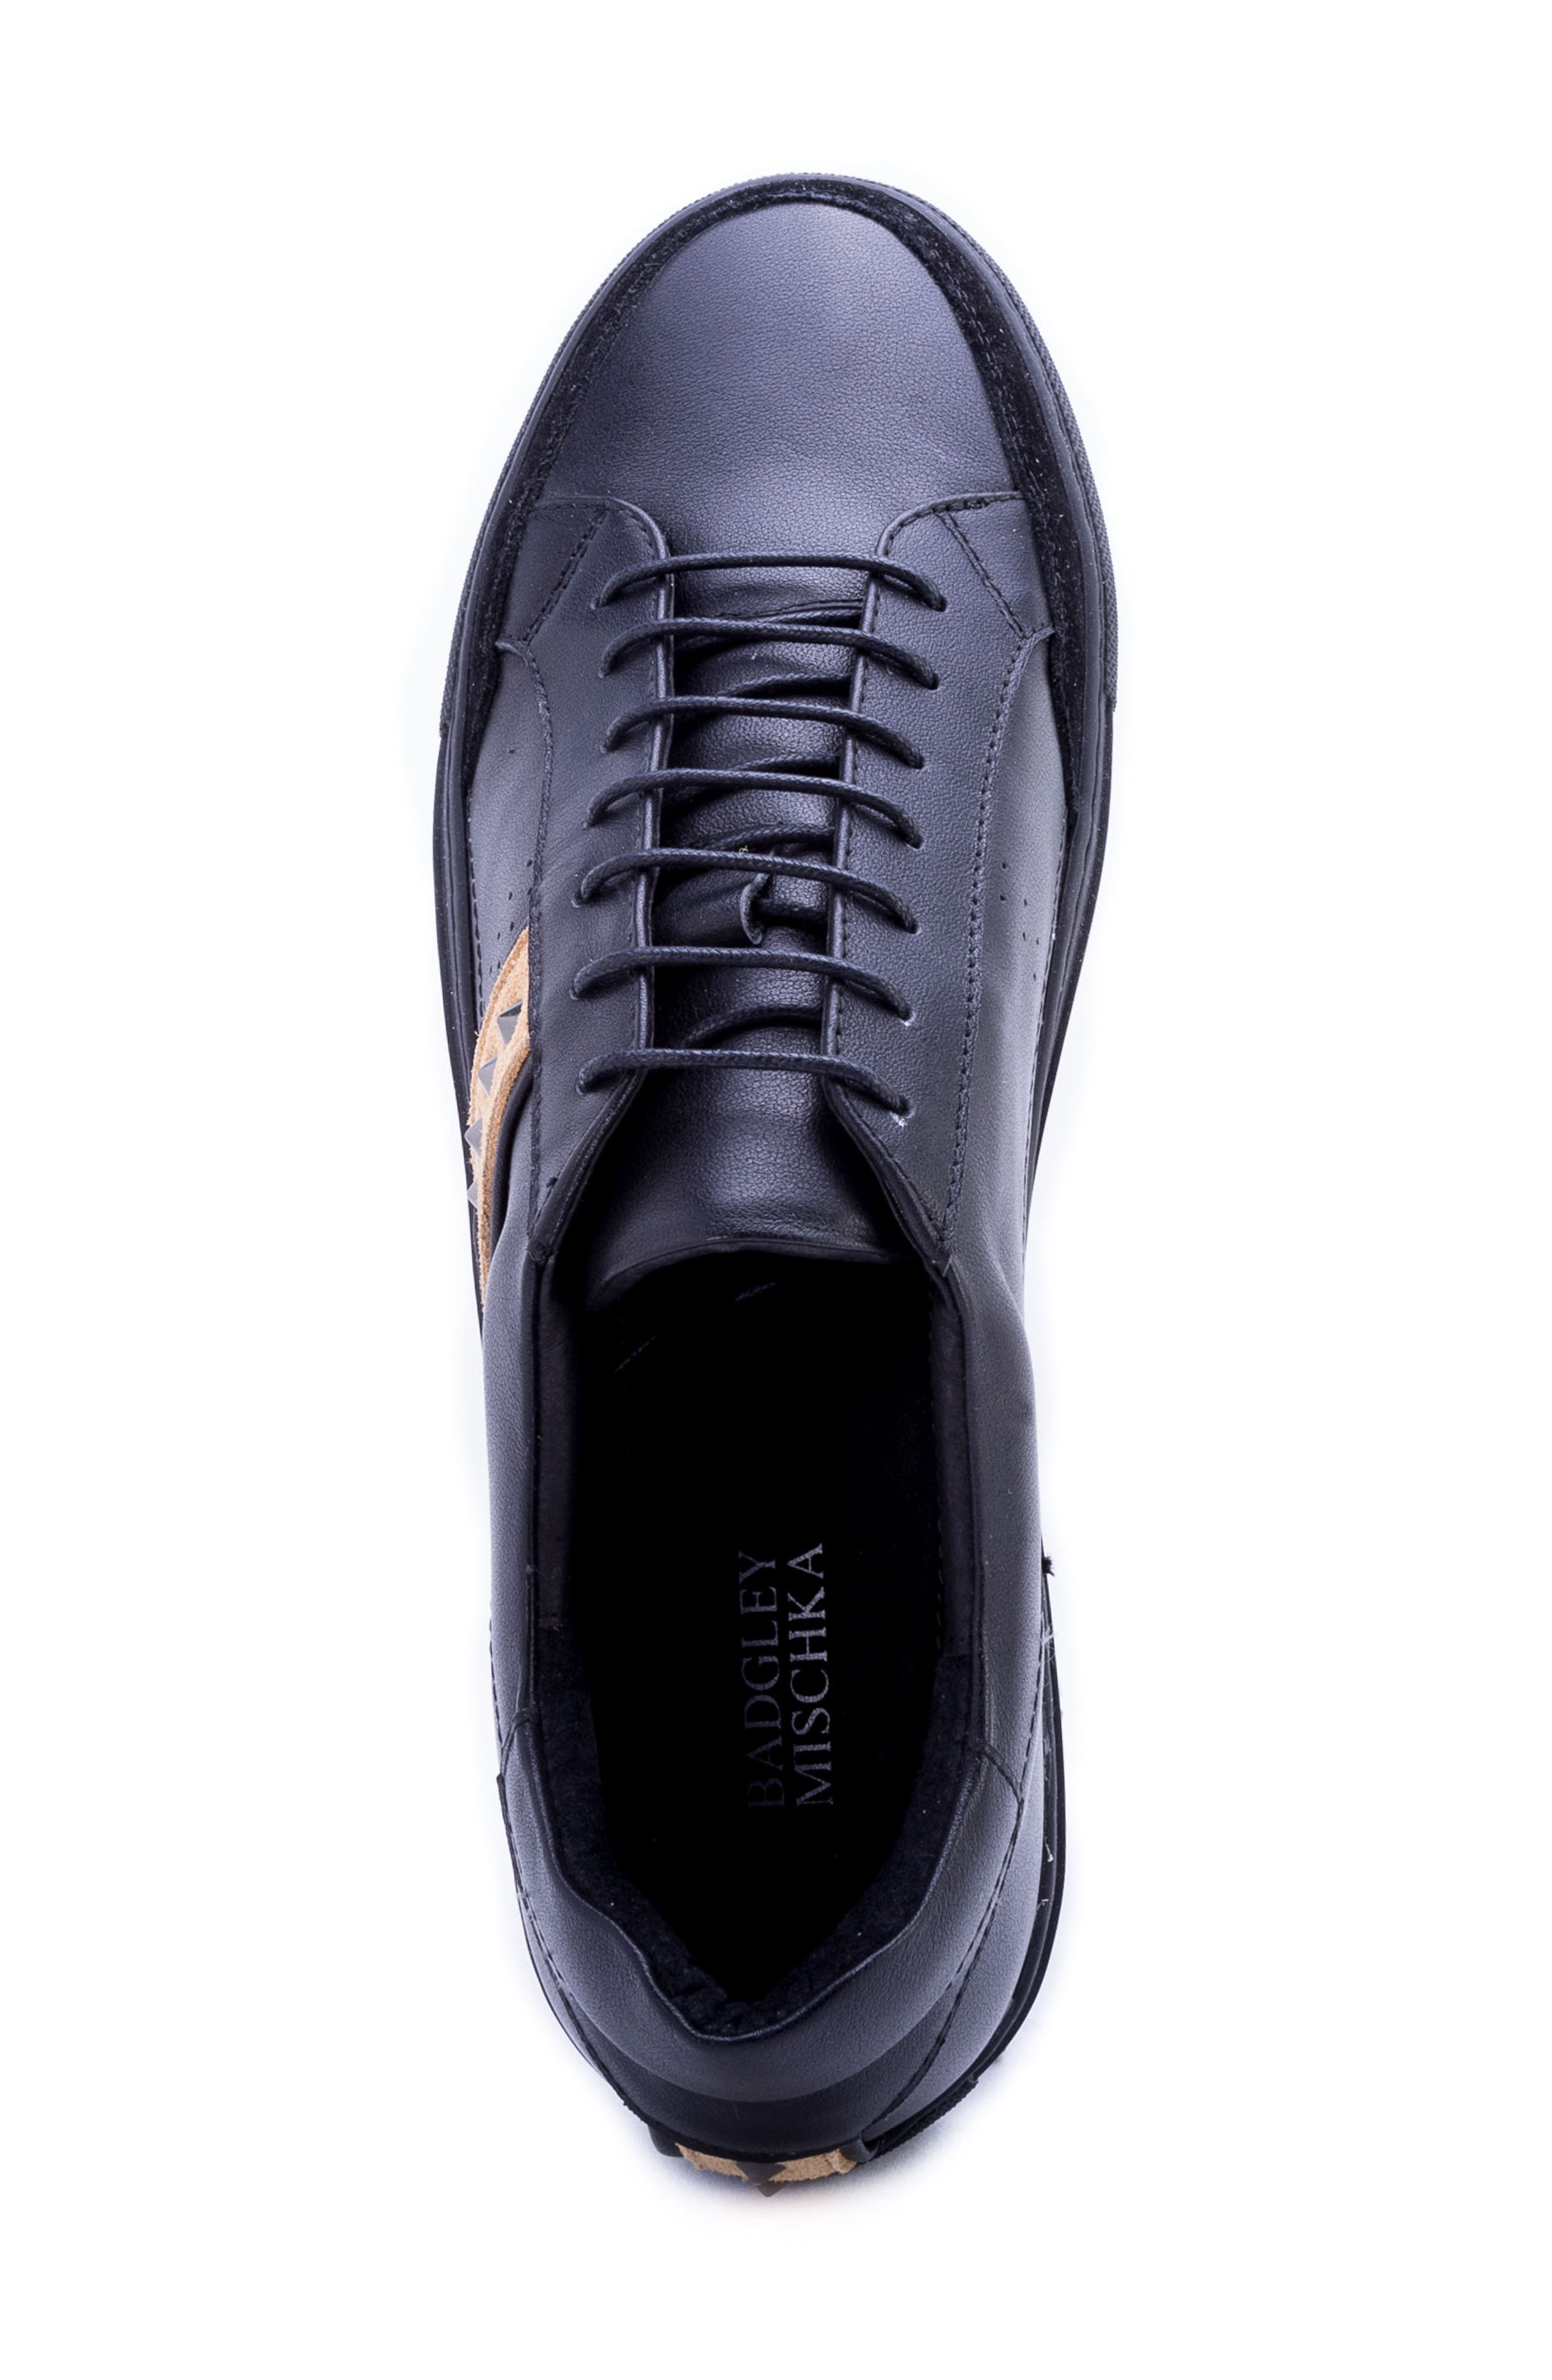 Badgley Mischka Connery Sneaker,                             Alternate thumbnail 5, color,                             BLACK LEATHER